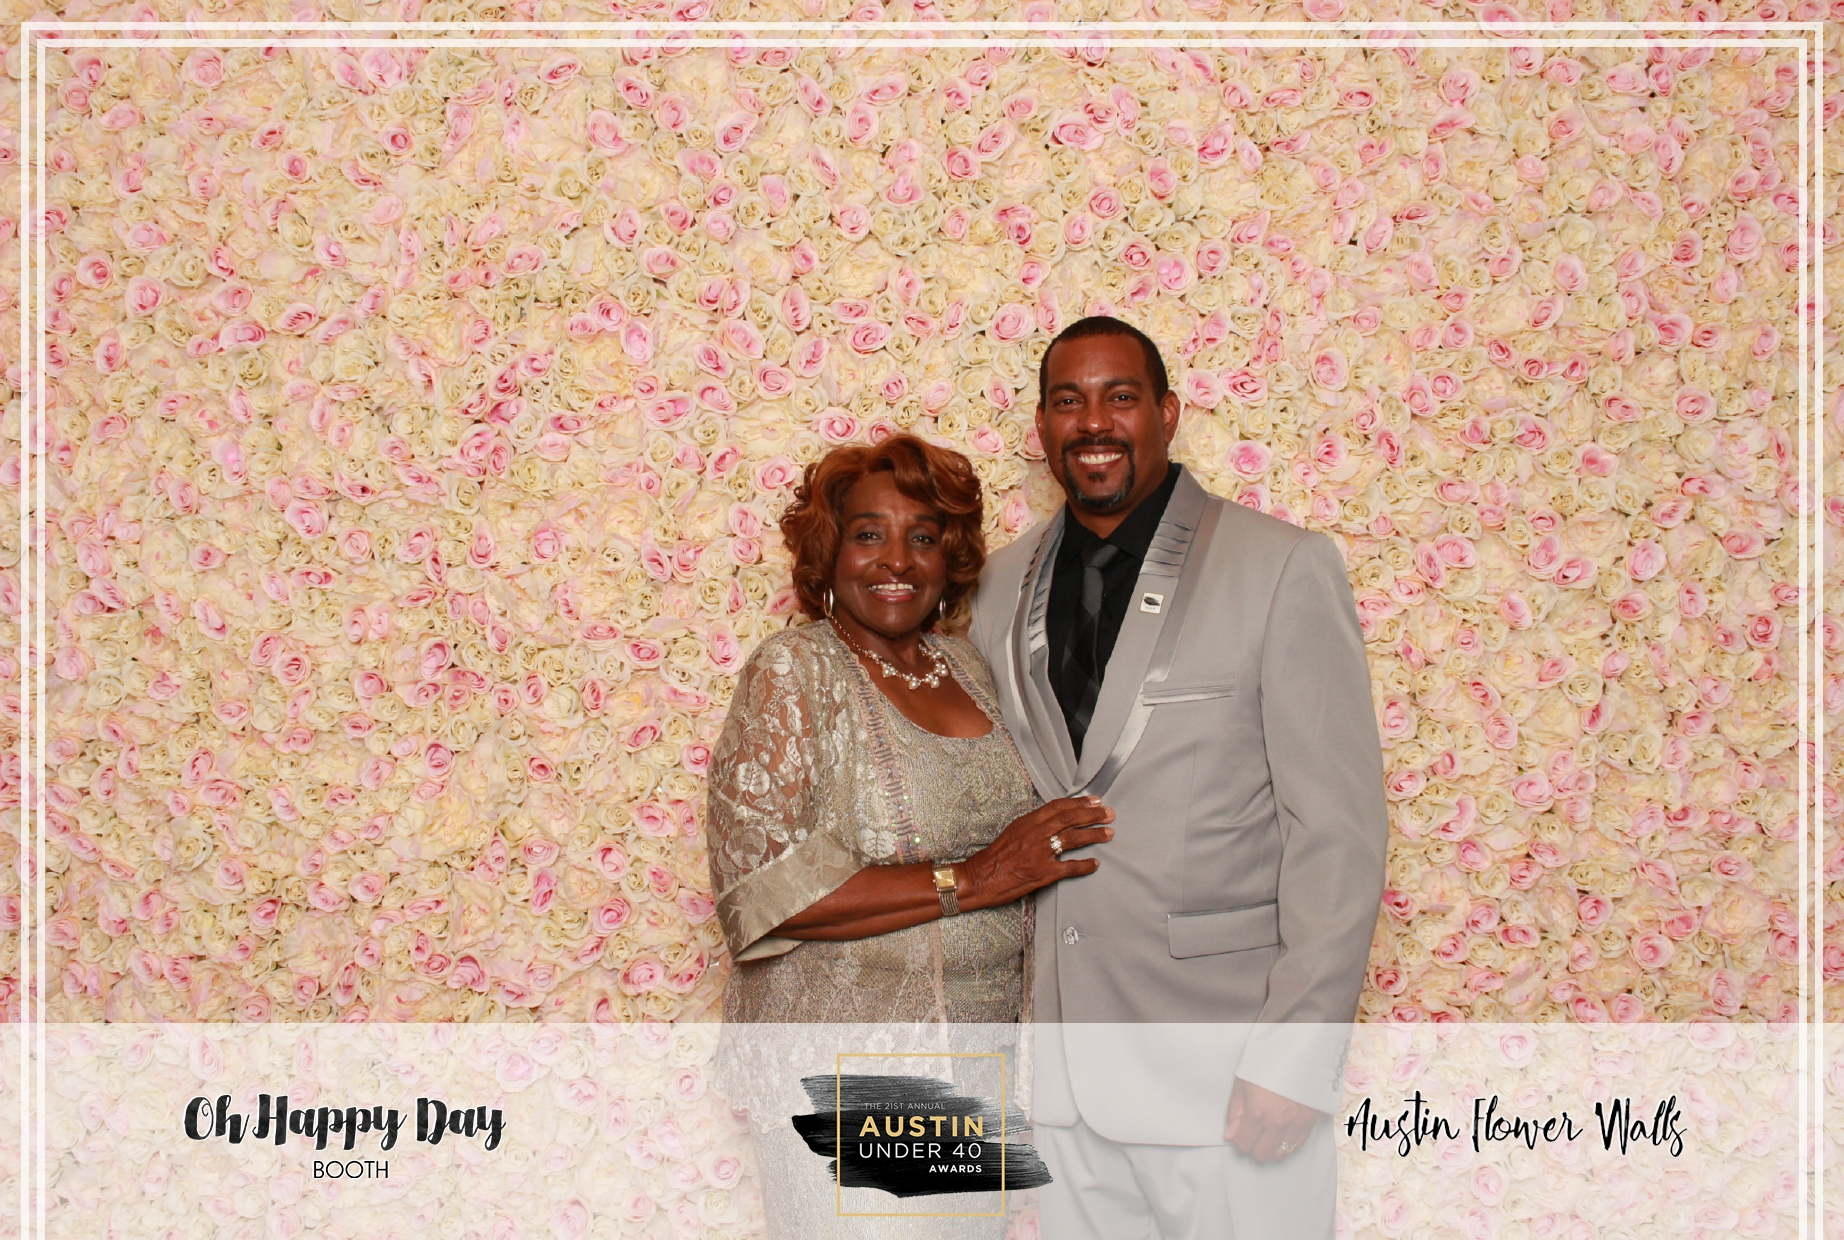 Oh Happy Day Booth - Austin Under 40-15.jpg